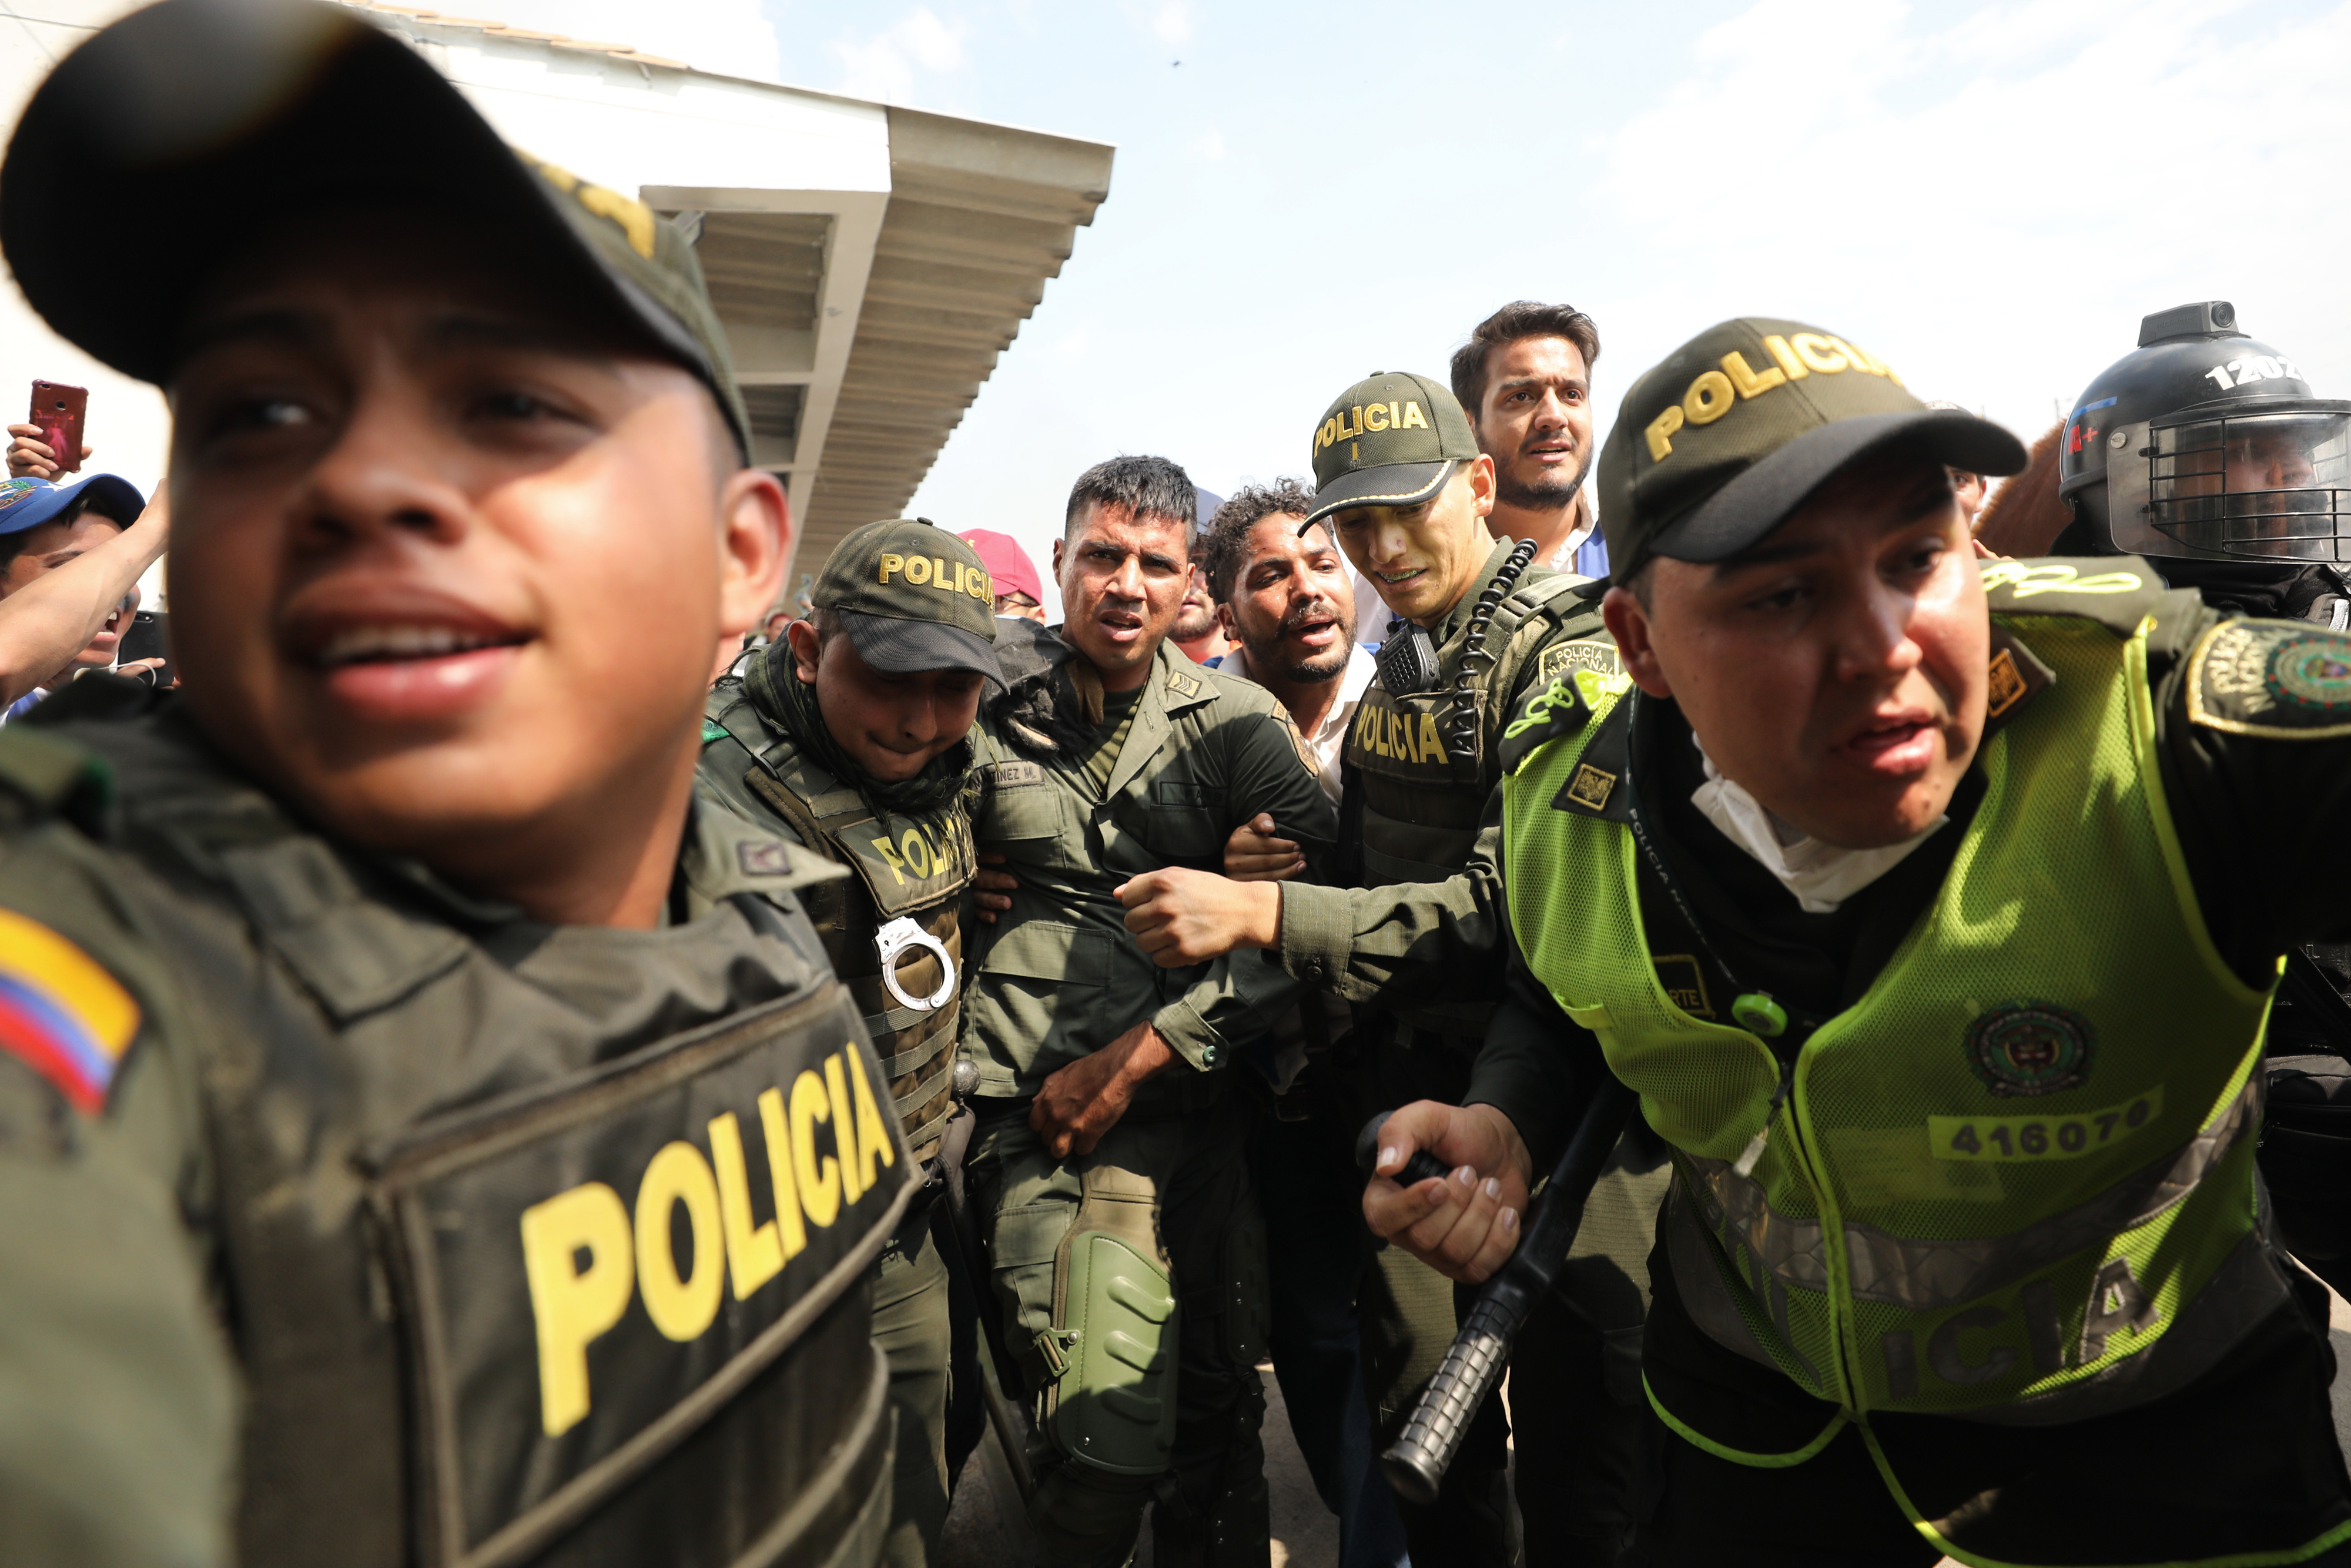 Colombia tells 800 Venezuelan soldiers to get a job instead of overthrowing Maduro